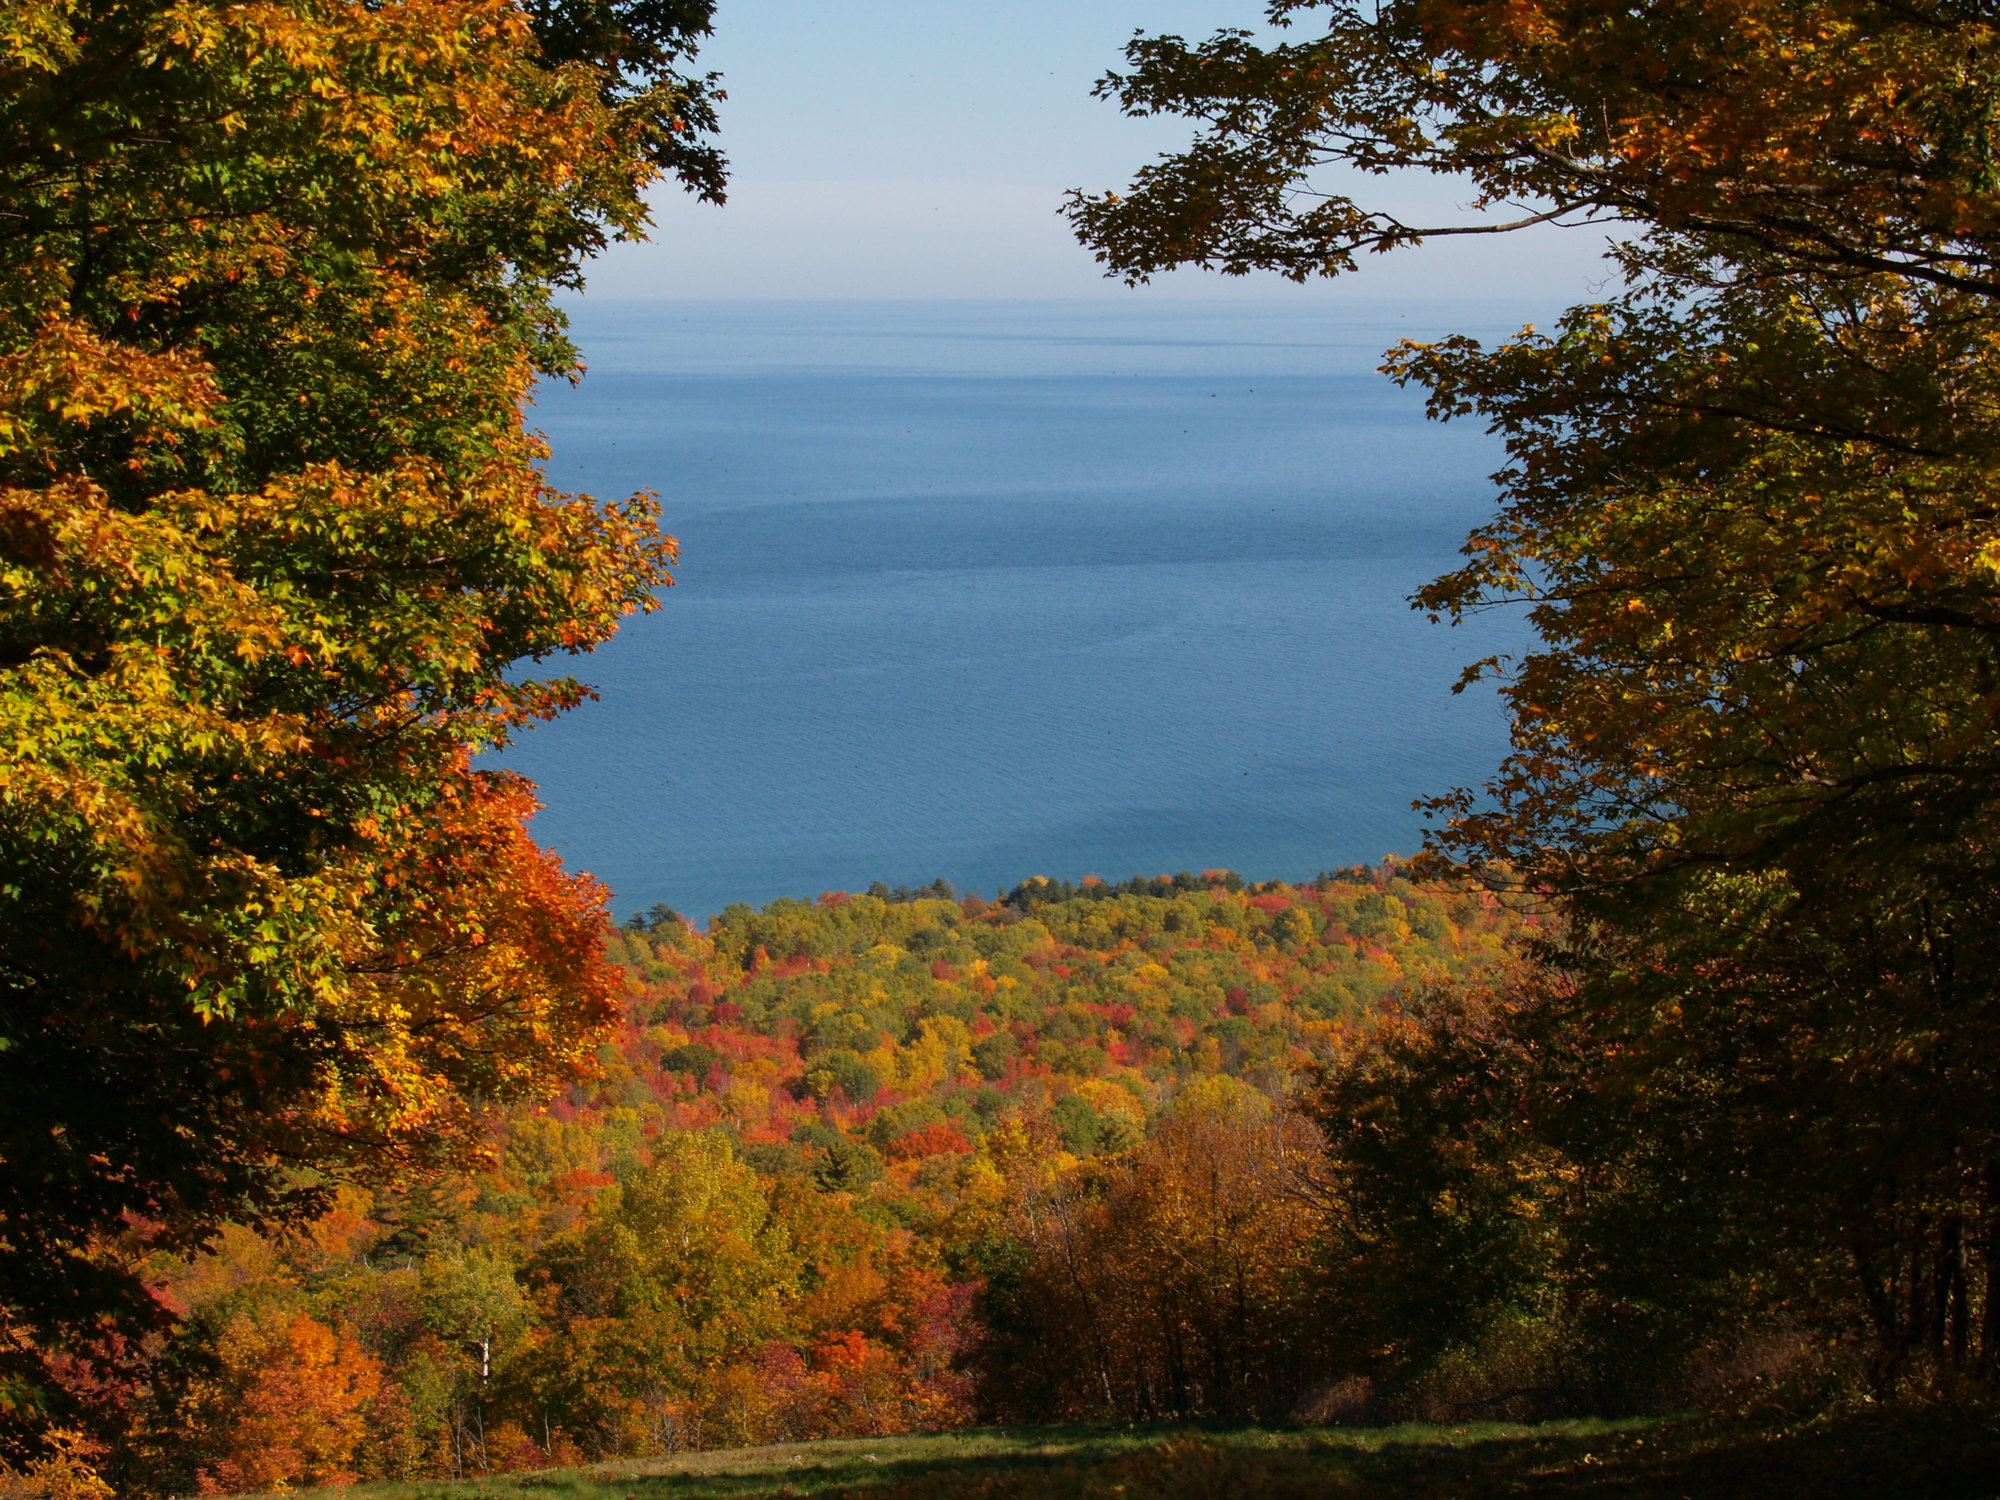 A view of Lake Superior amid the splendor of autumn at Porcupine Mountains Wilderness State Park in Ontonagon County.